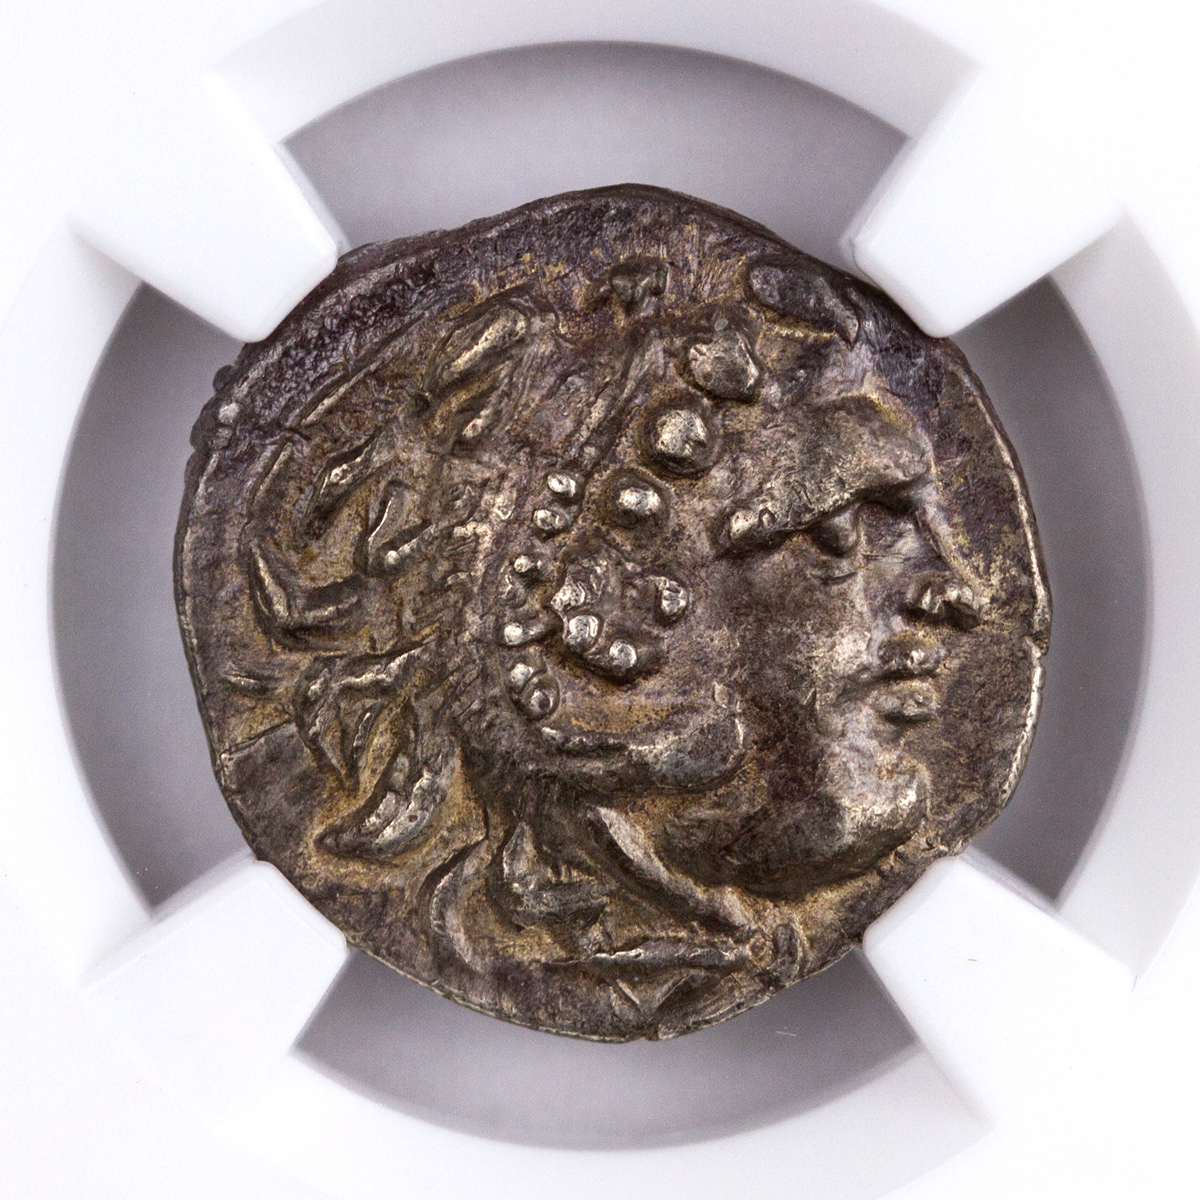 Celts, Silver Drachm (c.3rd Century BC) - Imitation of Ionia, Chios (Types of Alexander III) - obv. Heracles/rv. Zeus NGC Ch. VF